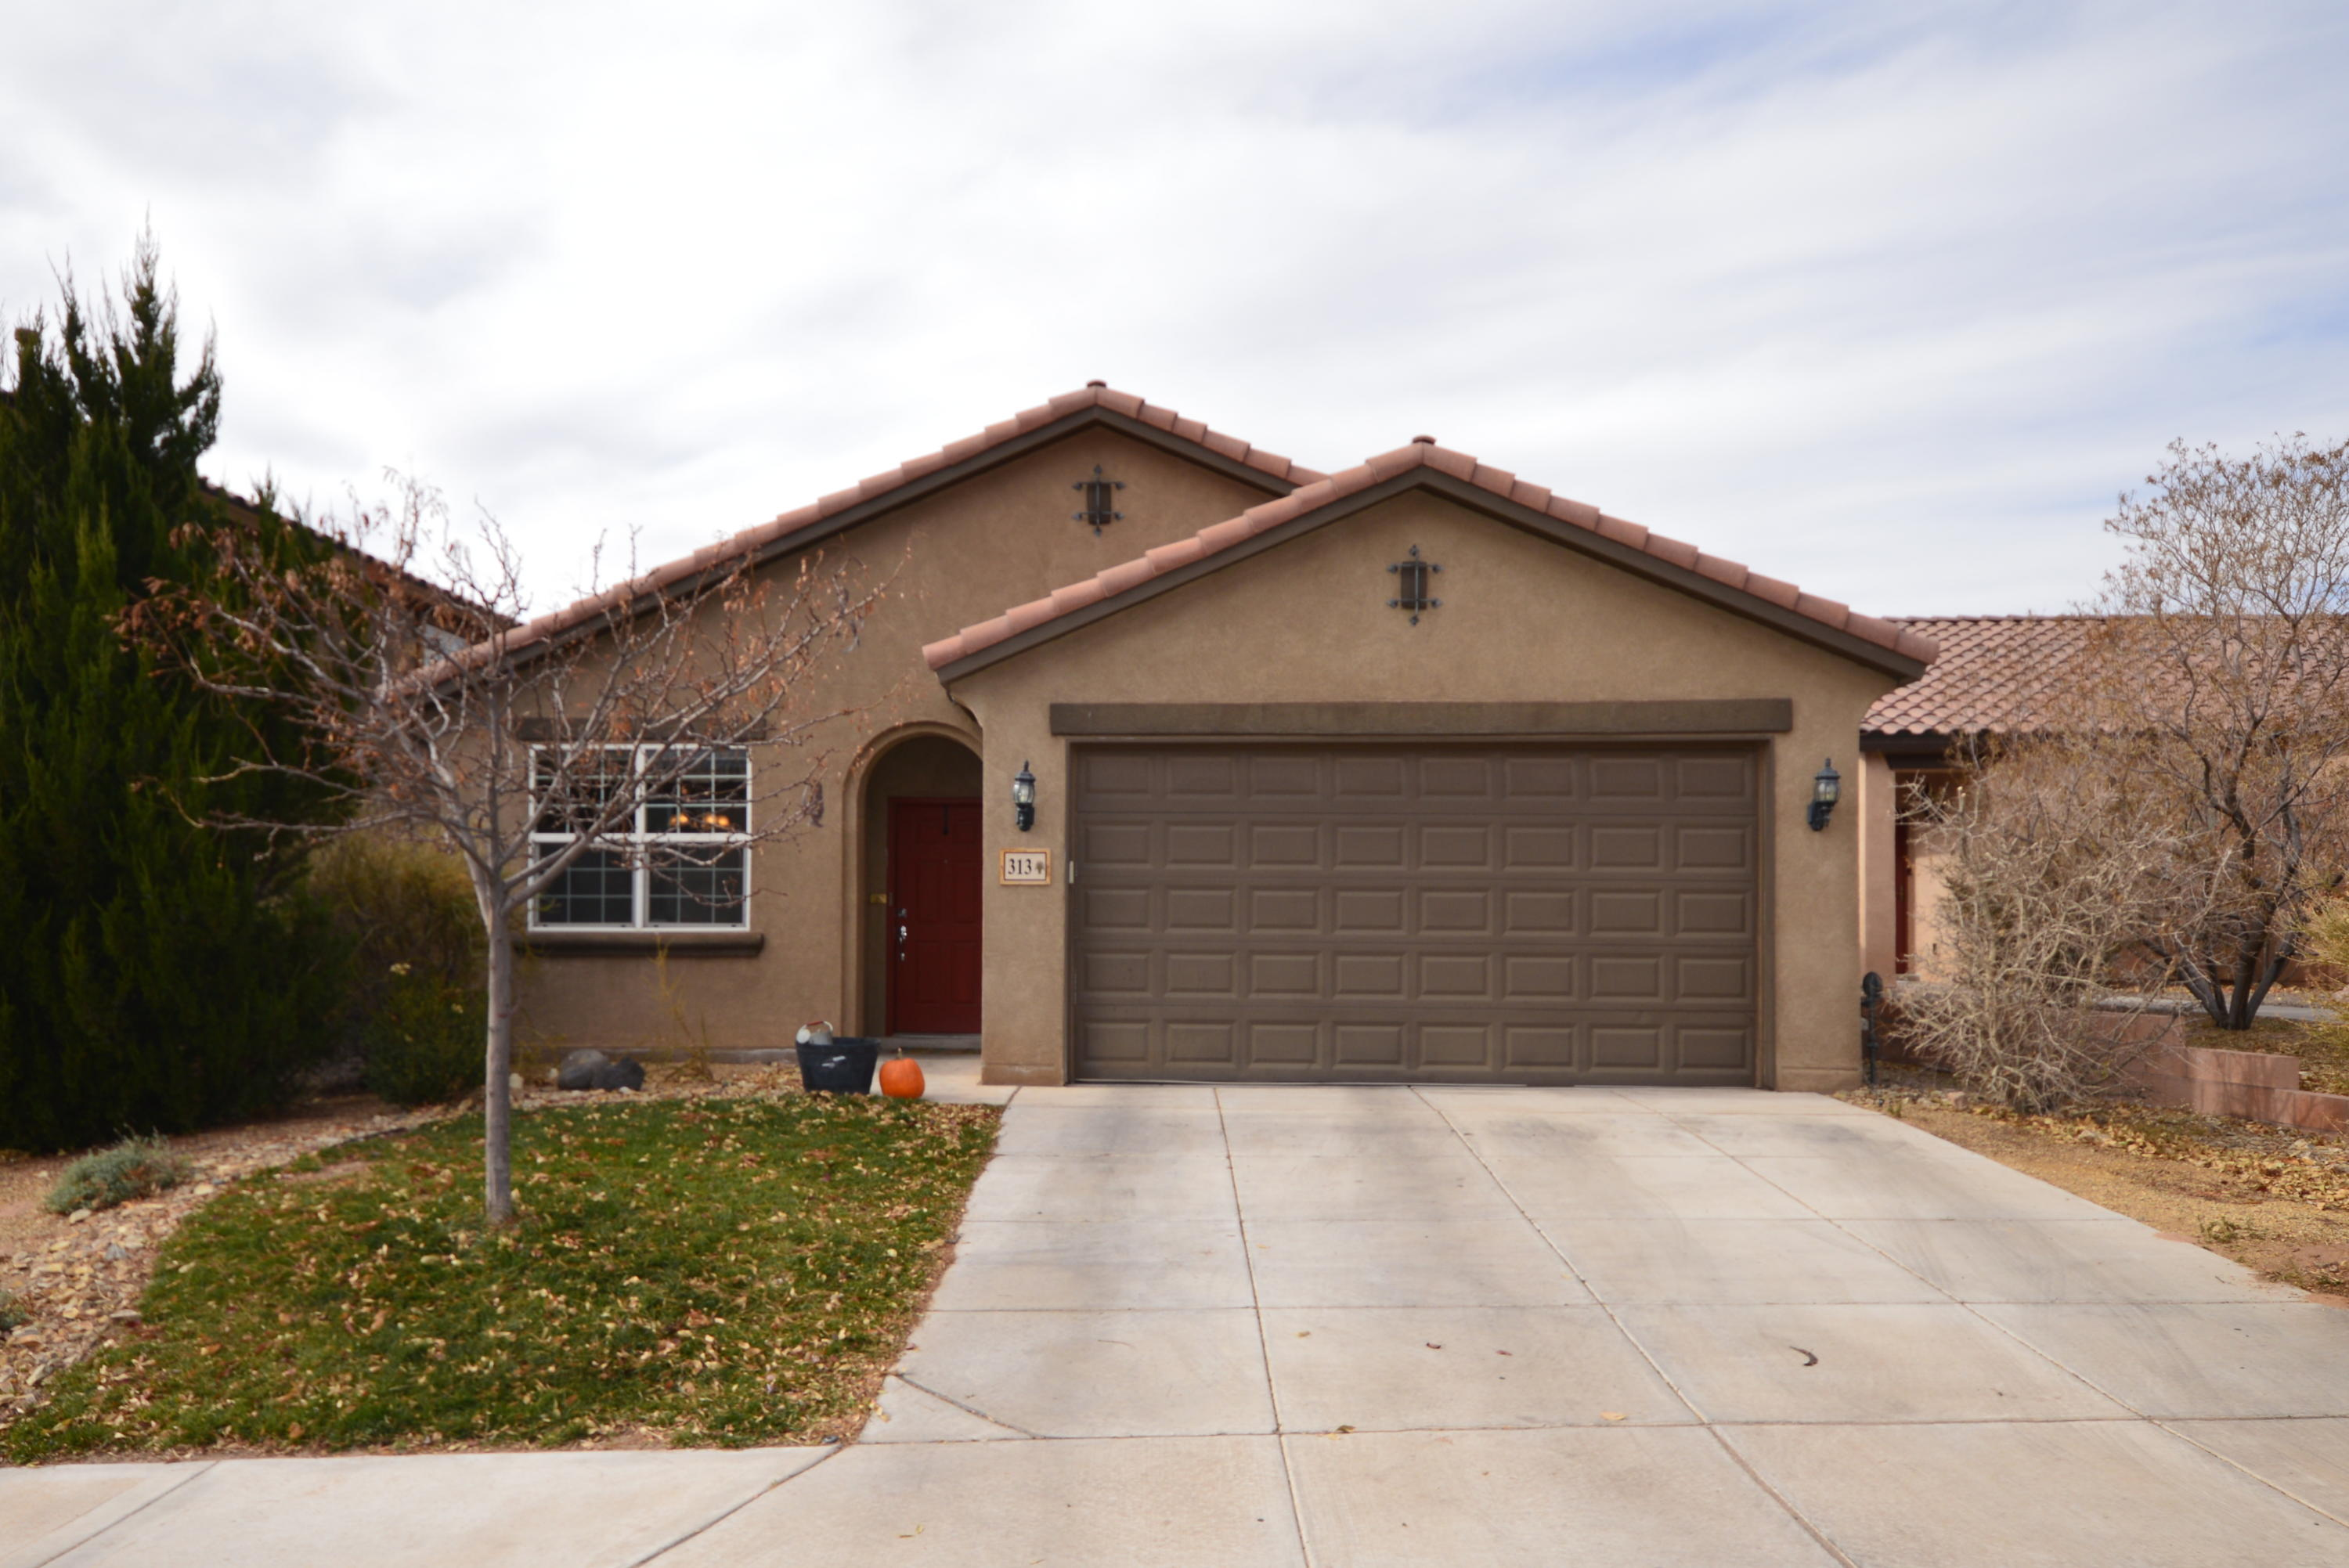 This lovely Pulte Sedella model in Loma Colorado has a bright open floorplan with a spacious greatroom. Kitchen has microwave and gas stove, dining area, pantry and bar. Three large bedrooms including master bedroom with walkin closet and bath with two sinks. Home has tile floors in kitchen, dining room and baths and wood floors in living room and hallways, and carpet in bedrooms. Fully landscaped yard with lawn and large patio and gated dog run. Home is close to community park and walking trails.